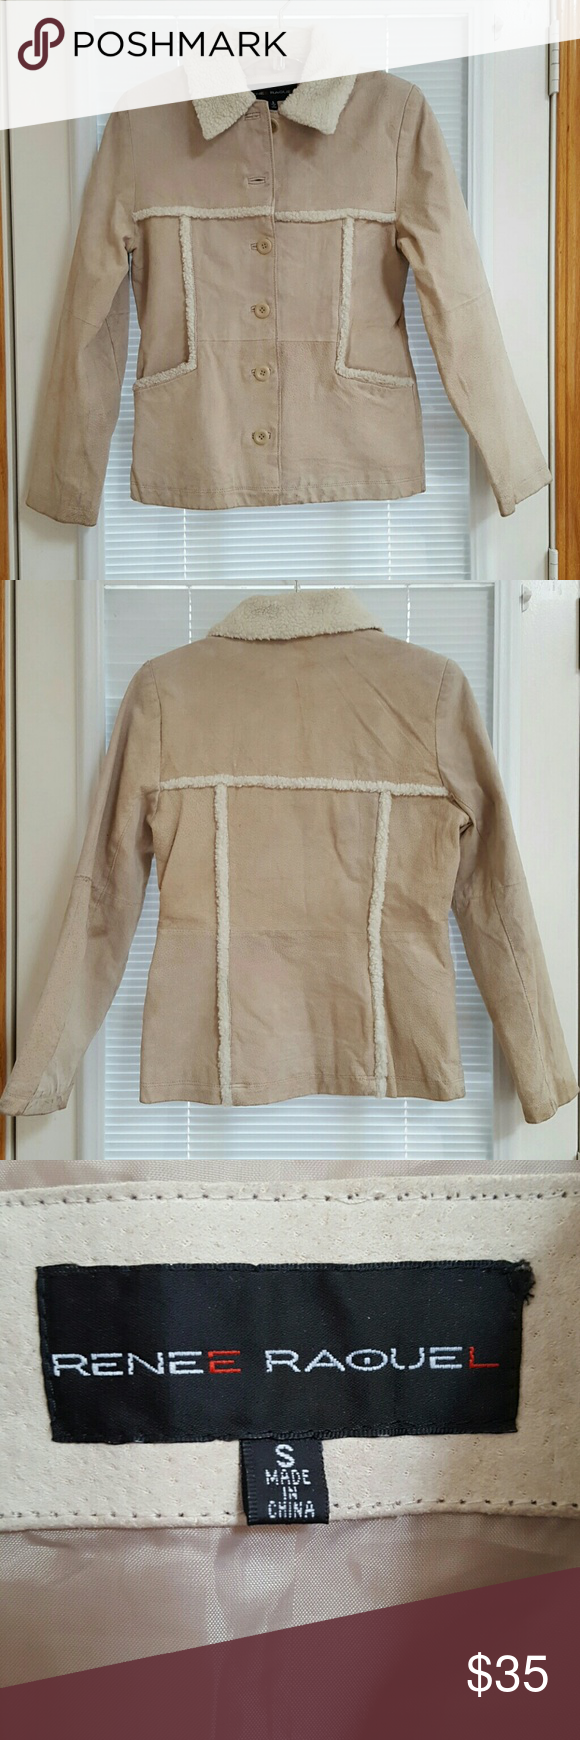 Faux Shearling Sport Jacket Genuine leather; light camel/ beige color; cream fur; button down; fully lined, traditional, timeless design. Perfect for fall. Needs a mild, light cleaning. Excellent condition Renee Raquel Jackets & Coats